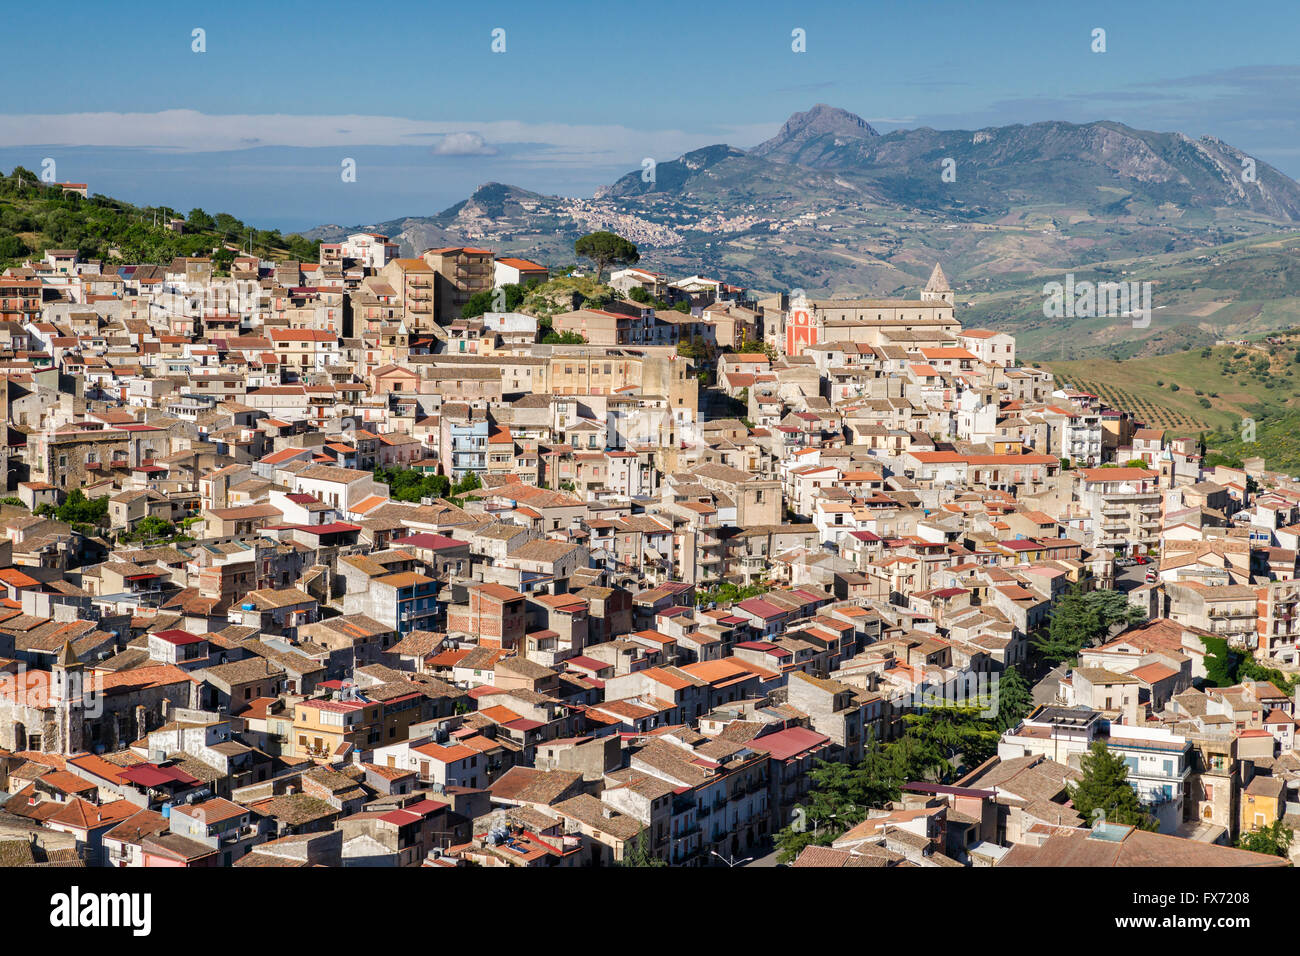 Ciminna, film location of The Leopard, il Gattopardo, directed by Luchino Visconti, Province of Palermo, Sicily, - Stock Image